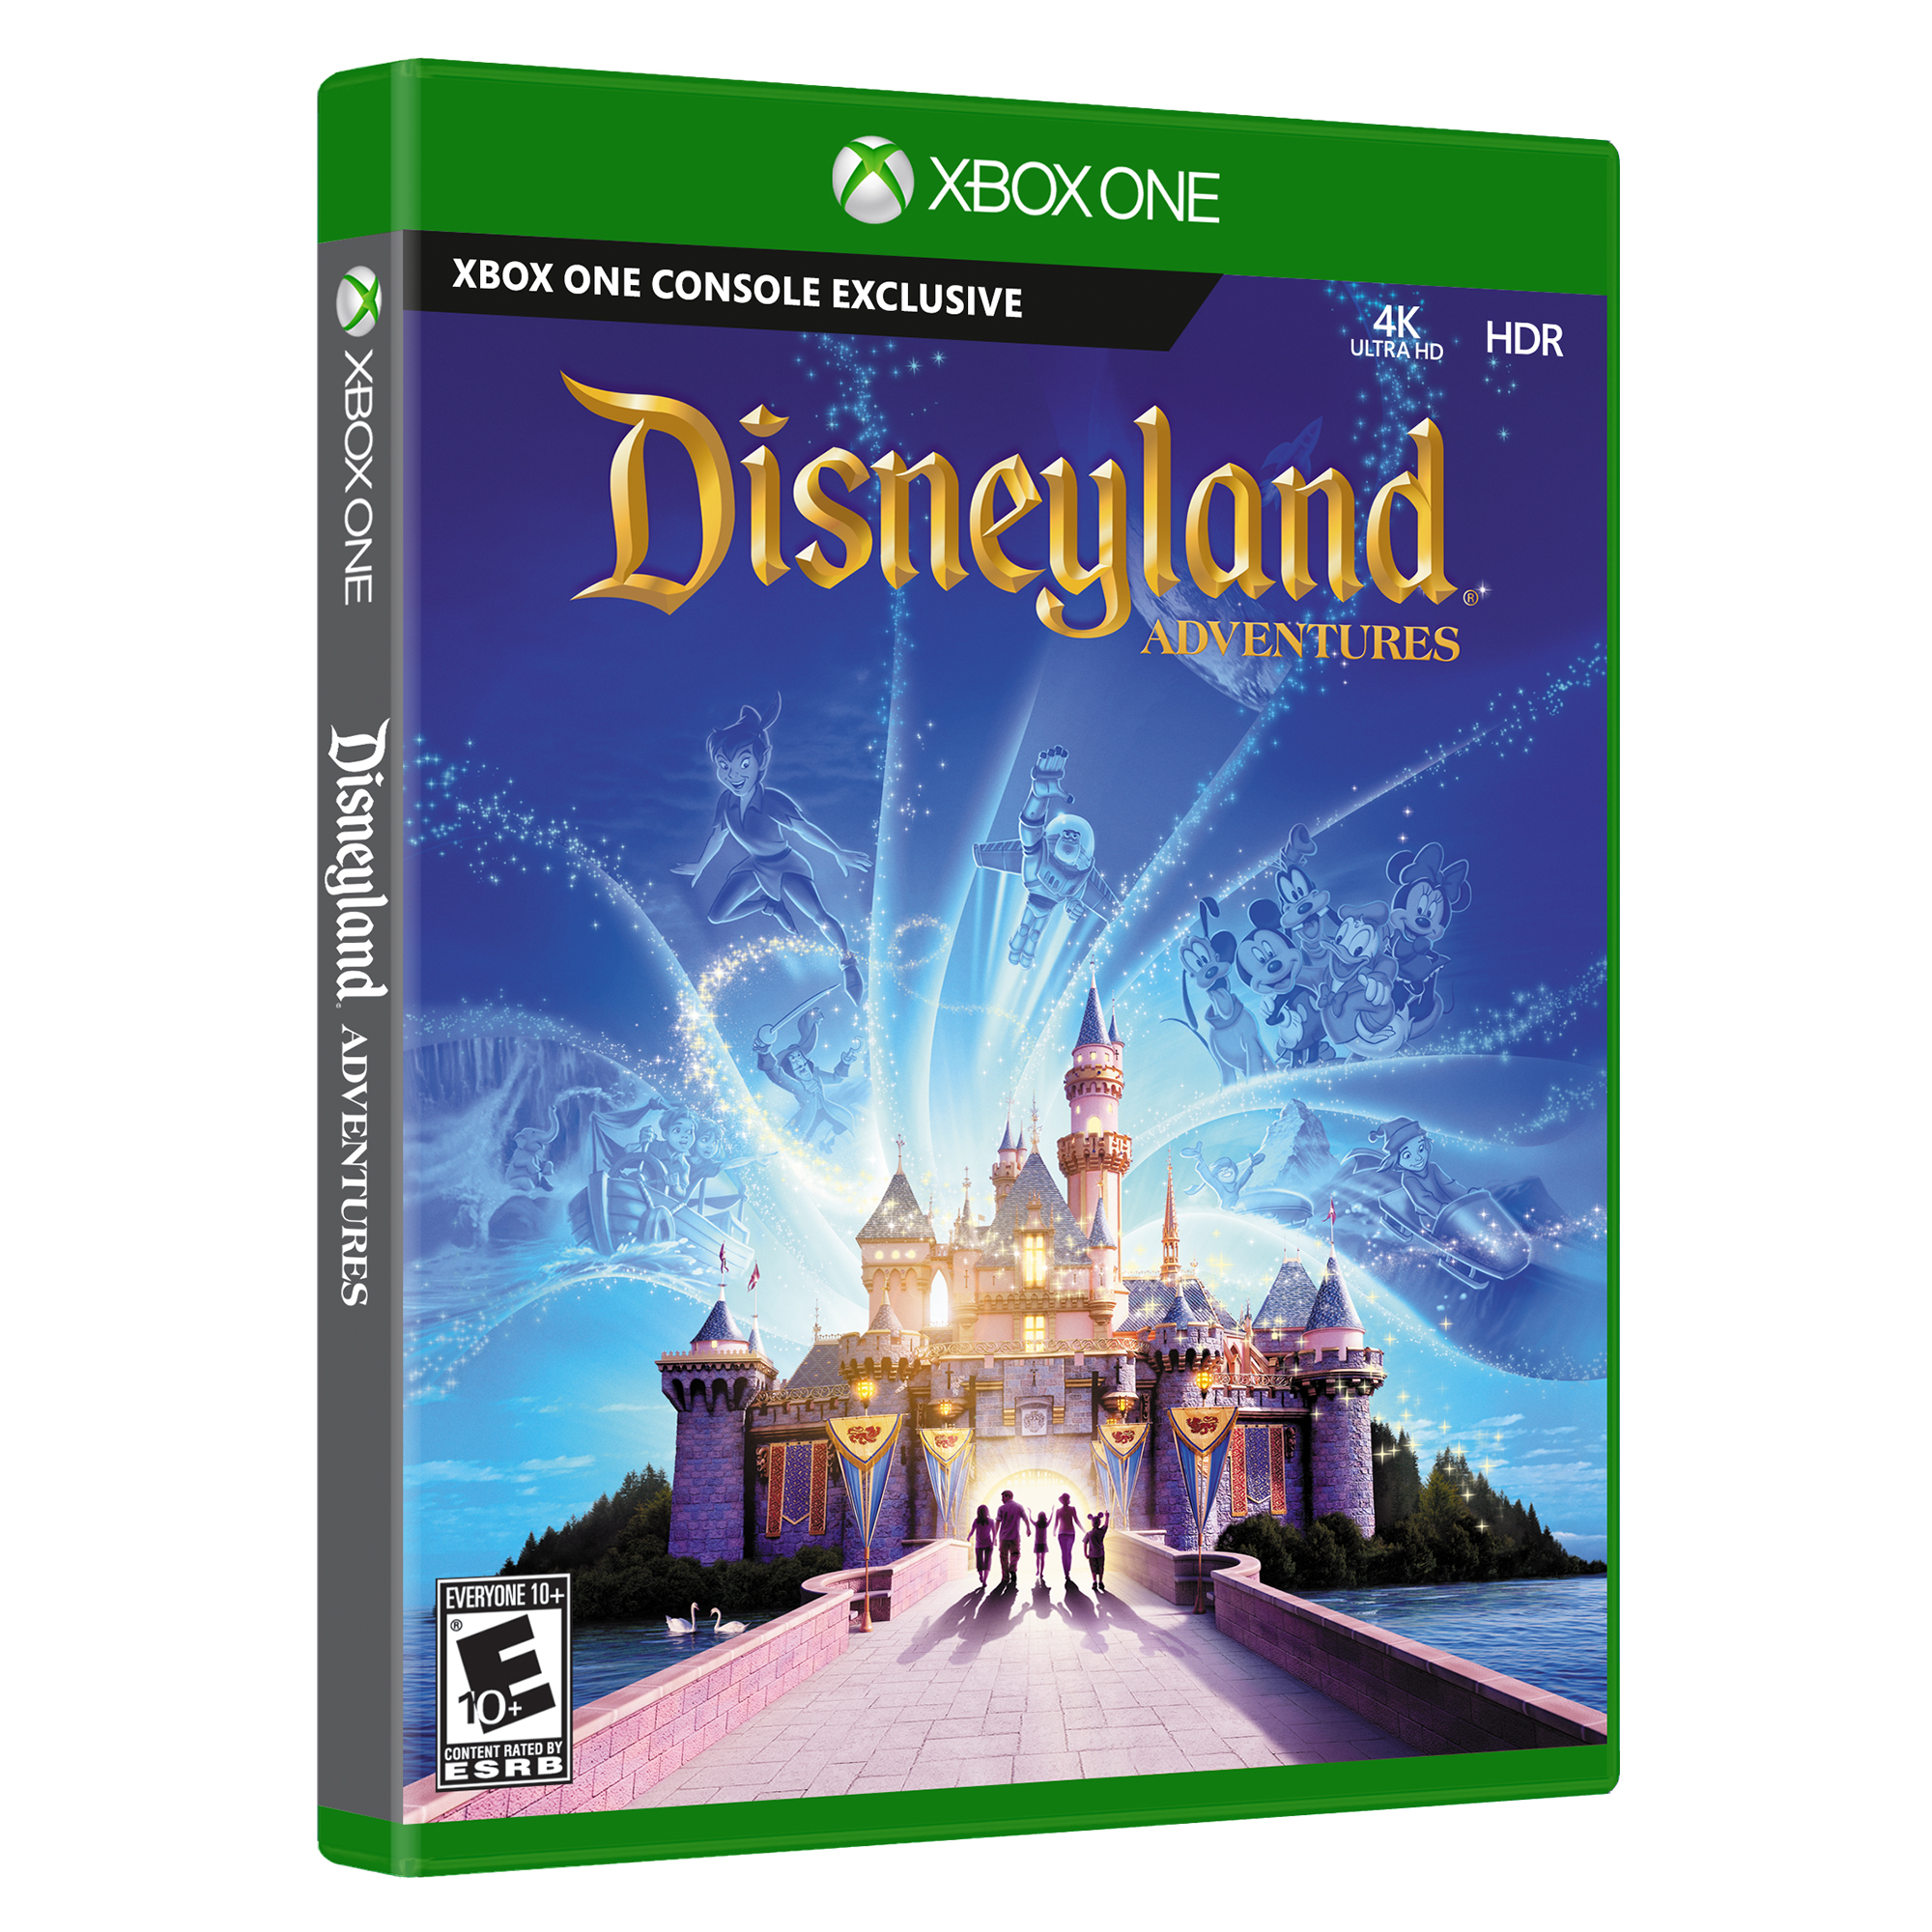 Disneyland Adventures, Microsoft, Xbox One, 889842226423